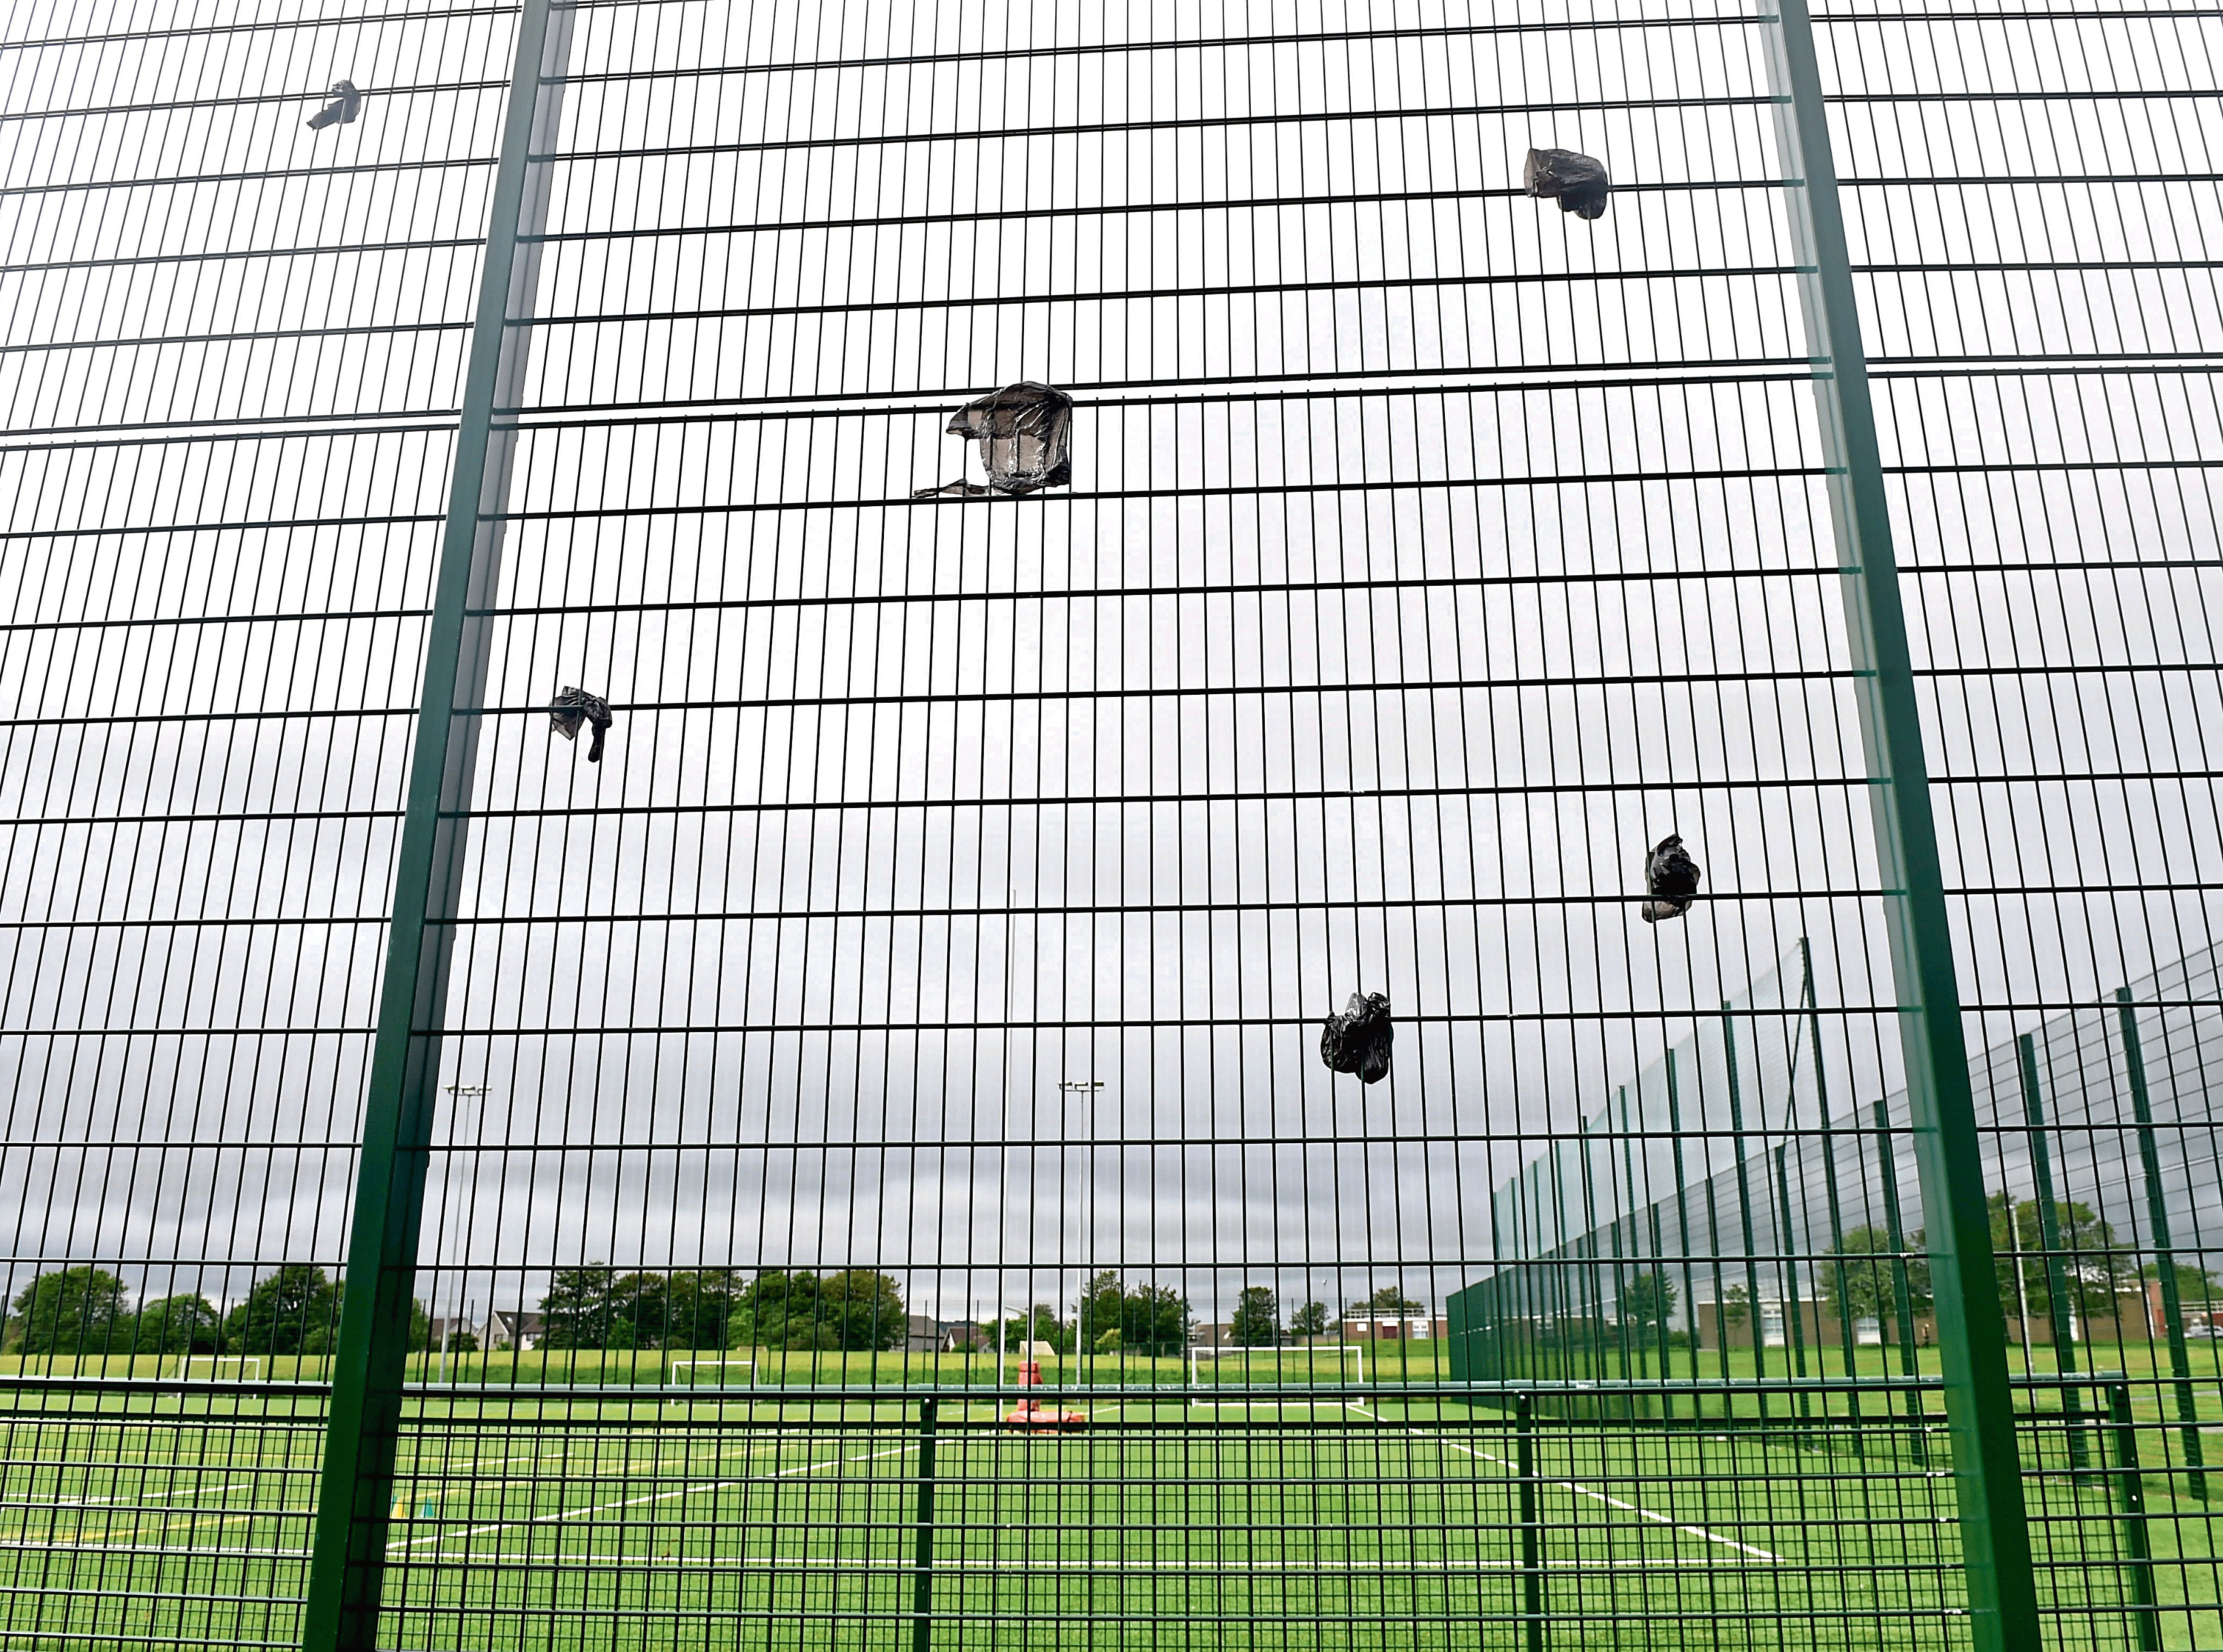 The waste bags have been left strewn across metal railings around the grounds at Dyce Academy